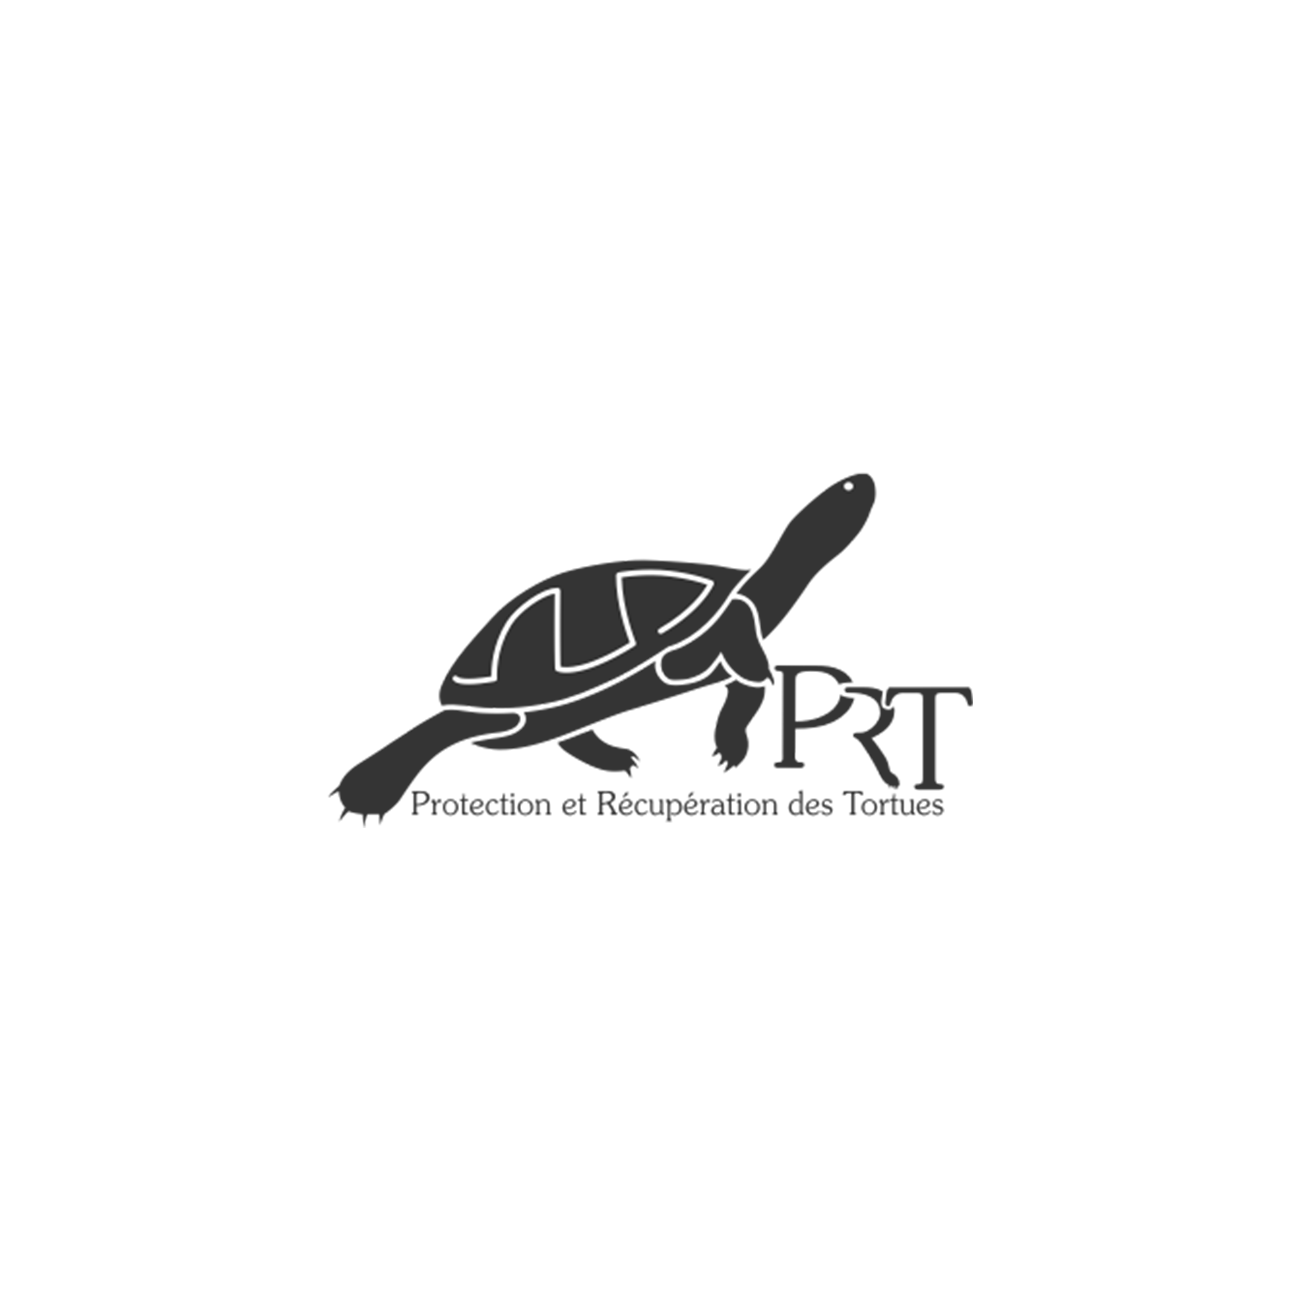 PRT protection Tortues